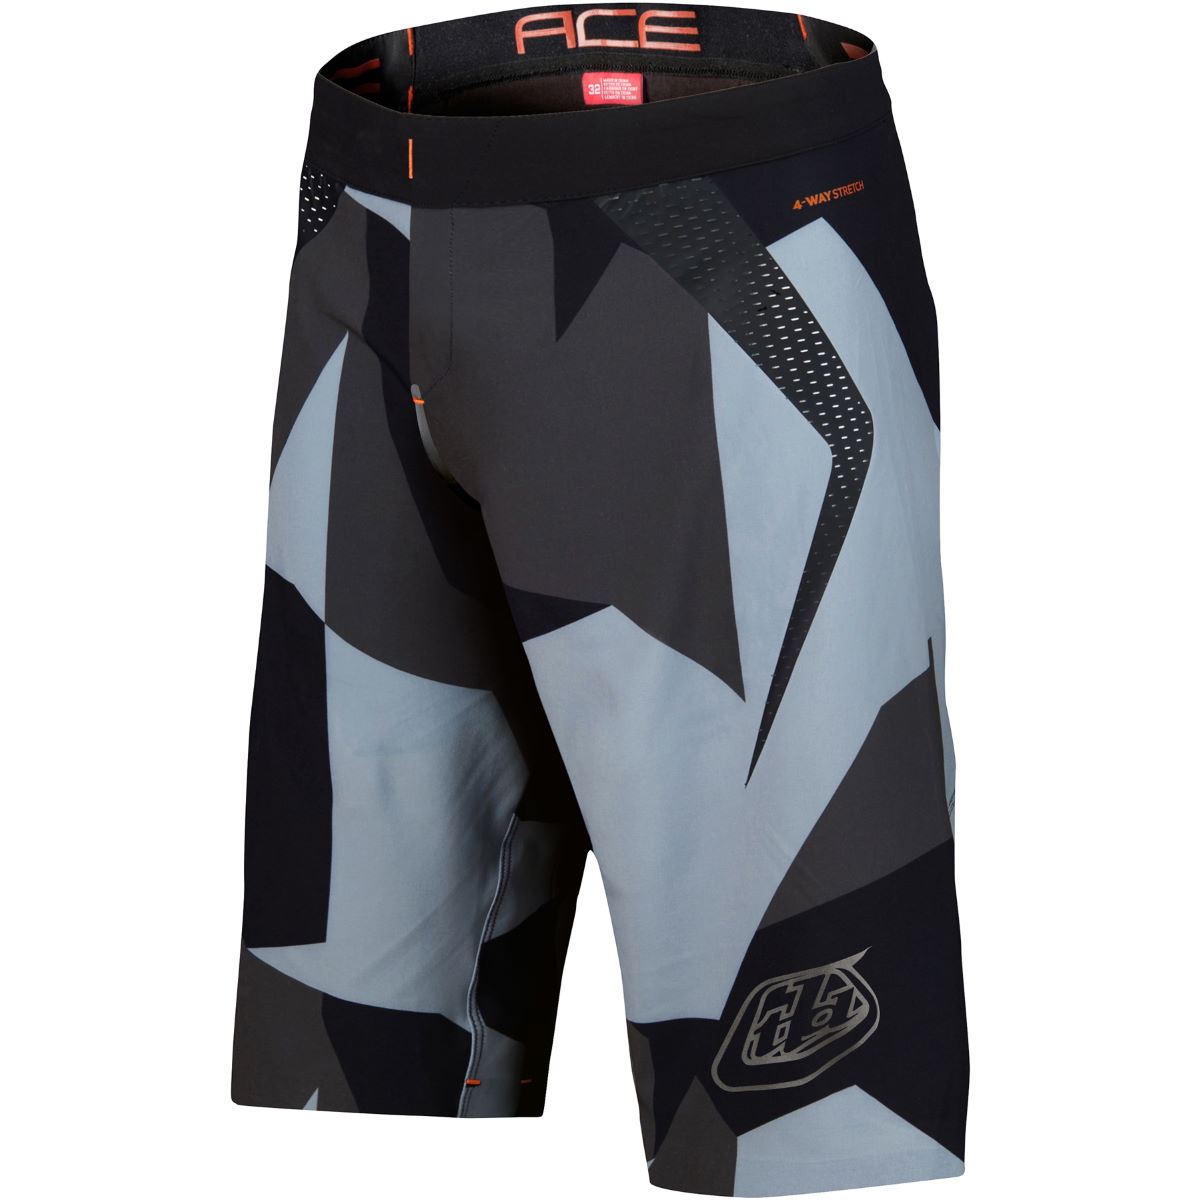 Short Troy Lee Designs Ace 2.0 Chop - 30 Chop Concrete Shorts VTT